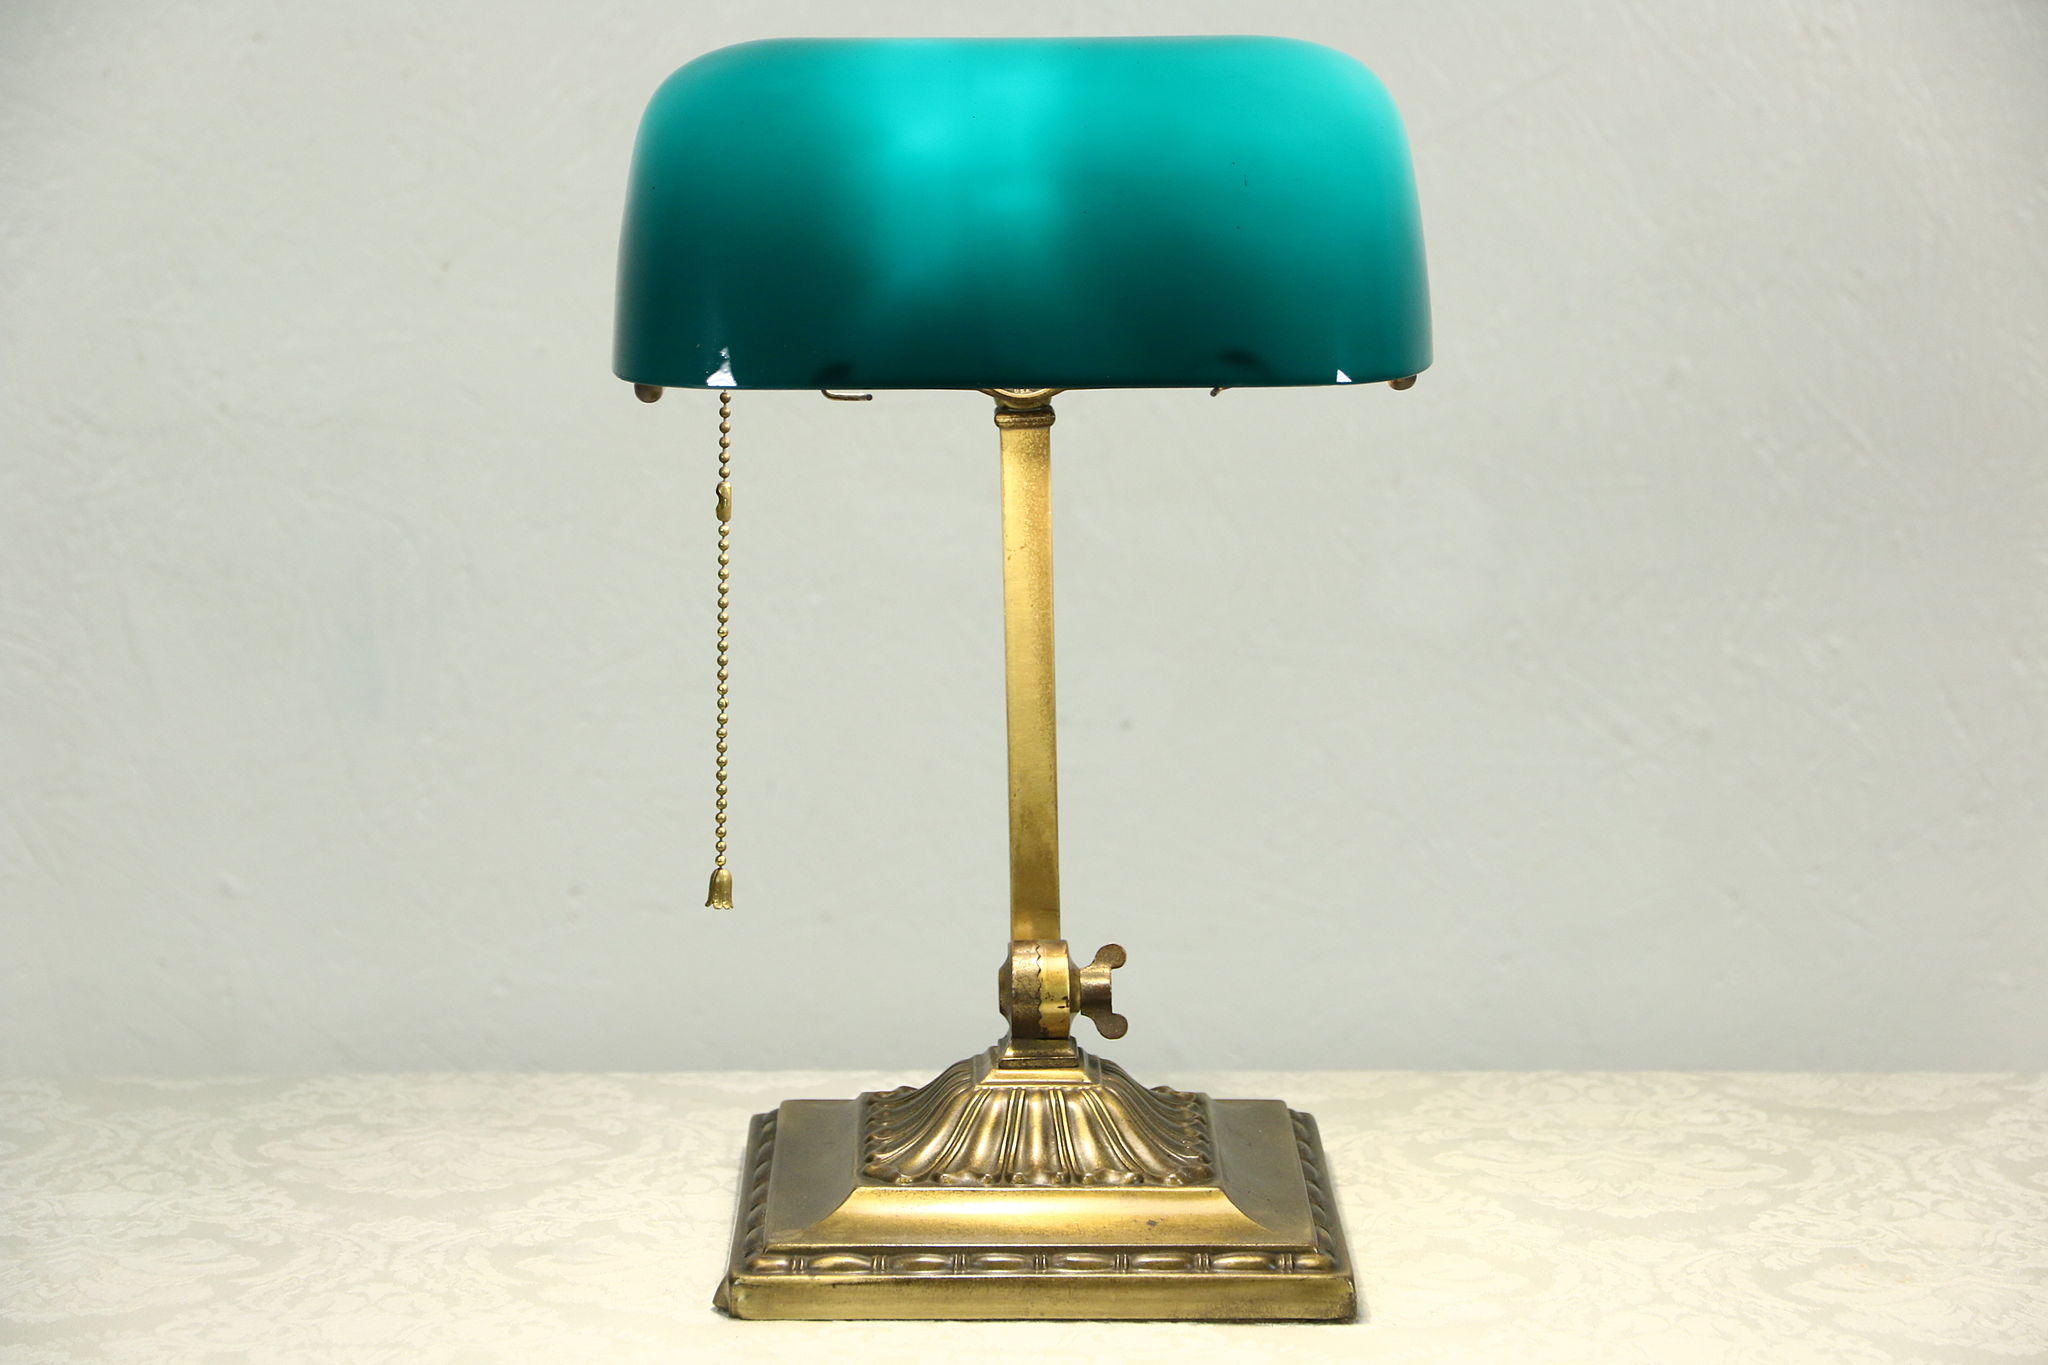 tensor lamp get desk find plated cheap antique guides brass shopping inch quotations bankers